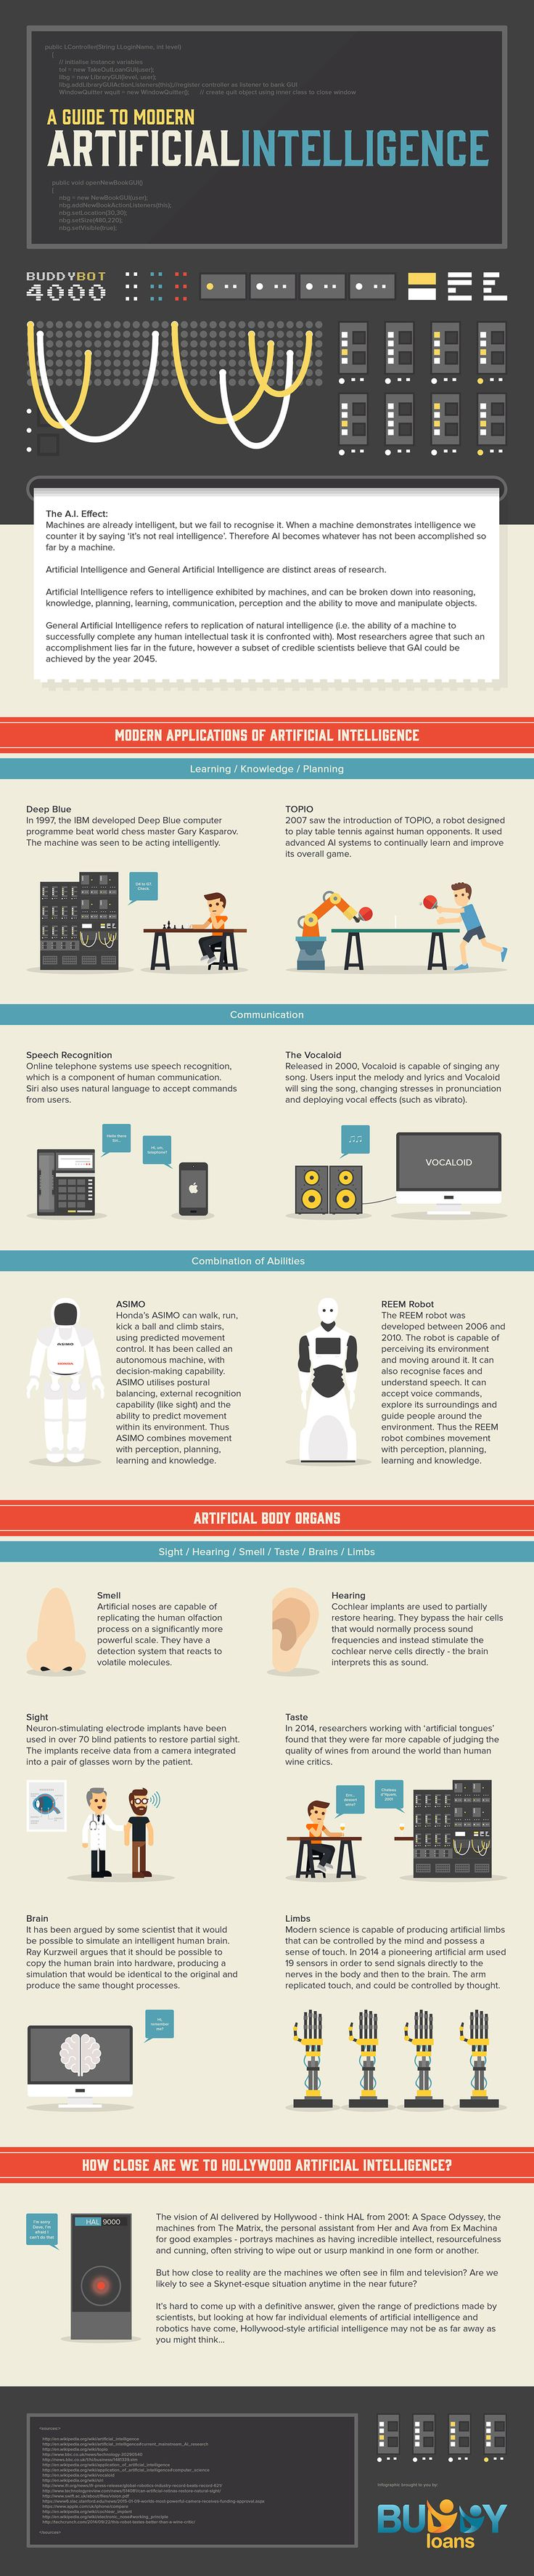 Modern Artificial Intelligence Infographic - http://elearninginfographics.com/modern-artificial-intelligence-infographic/